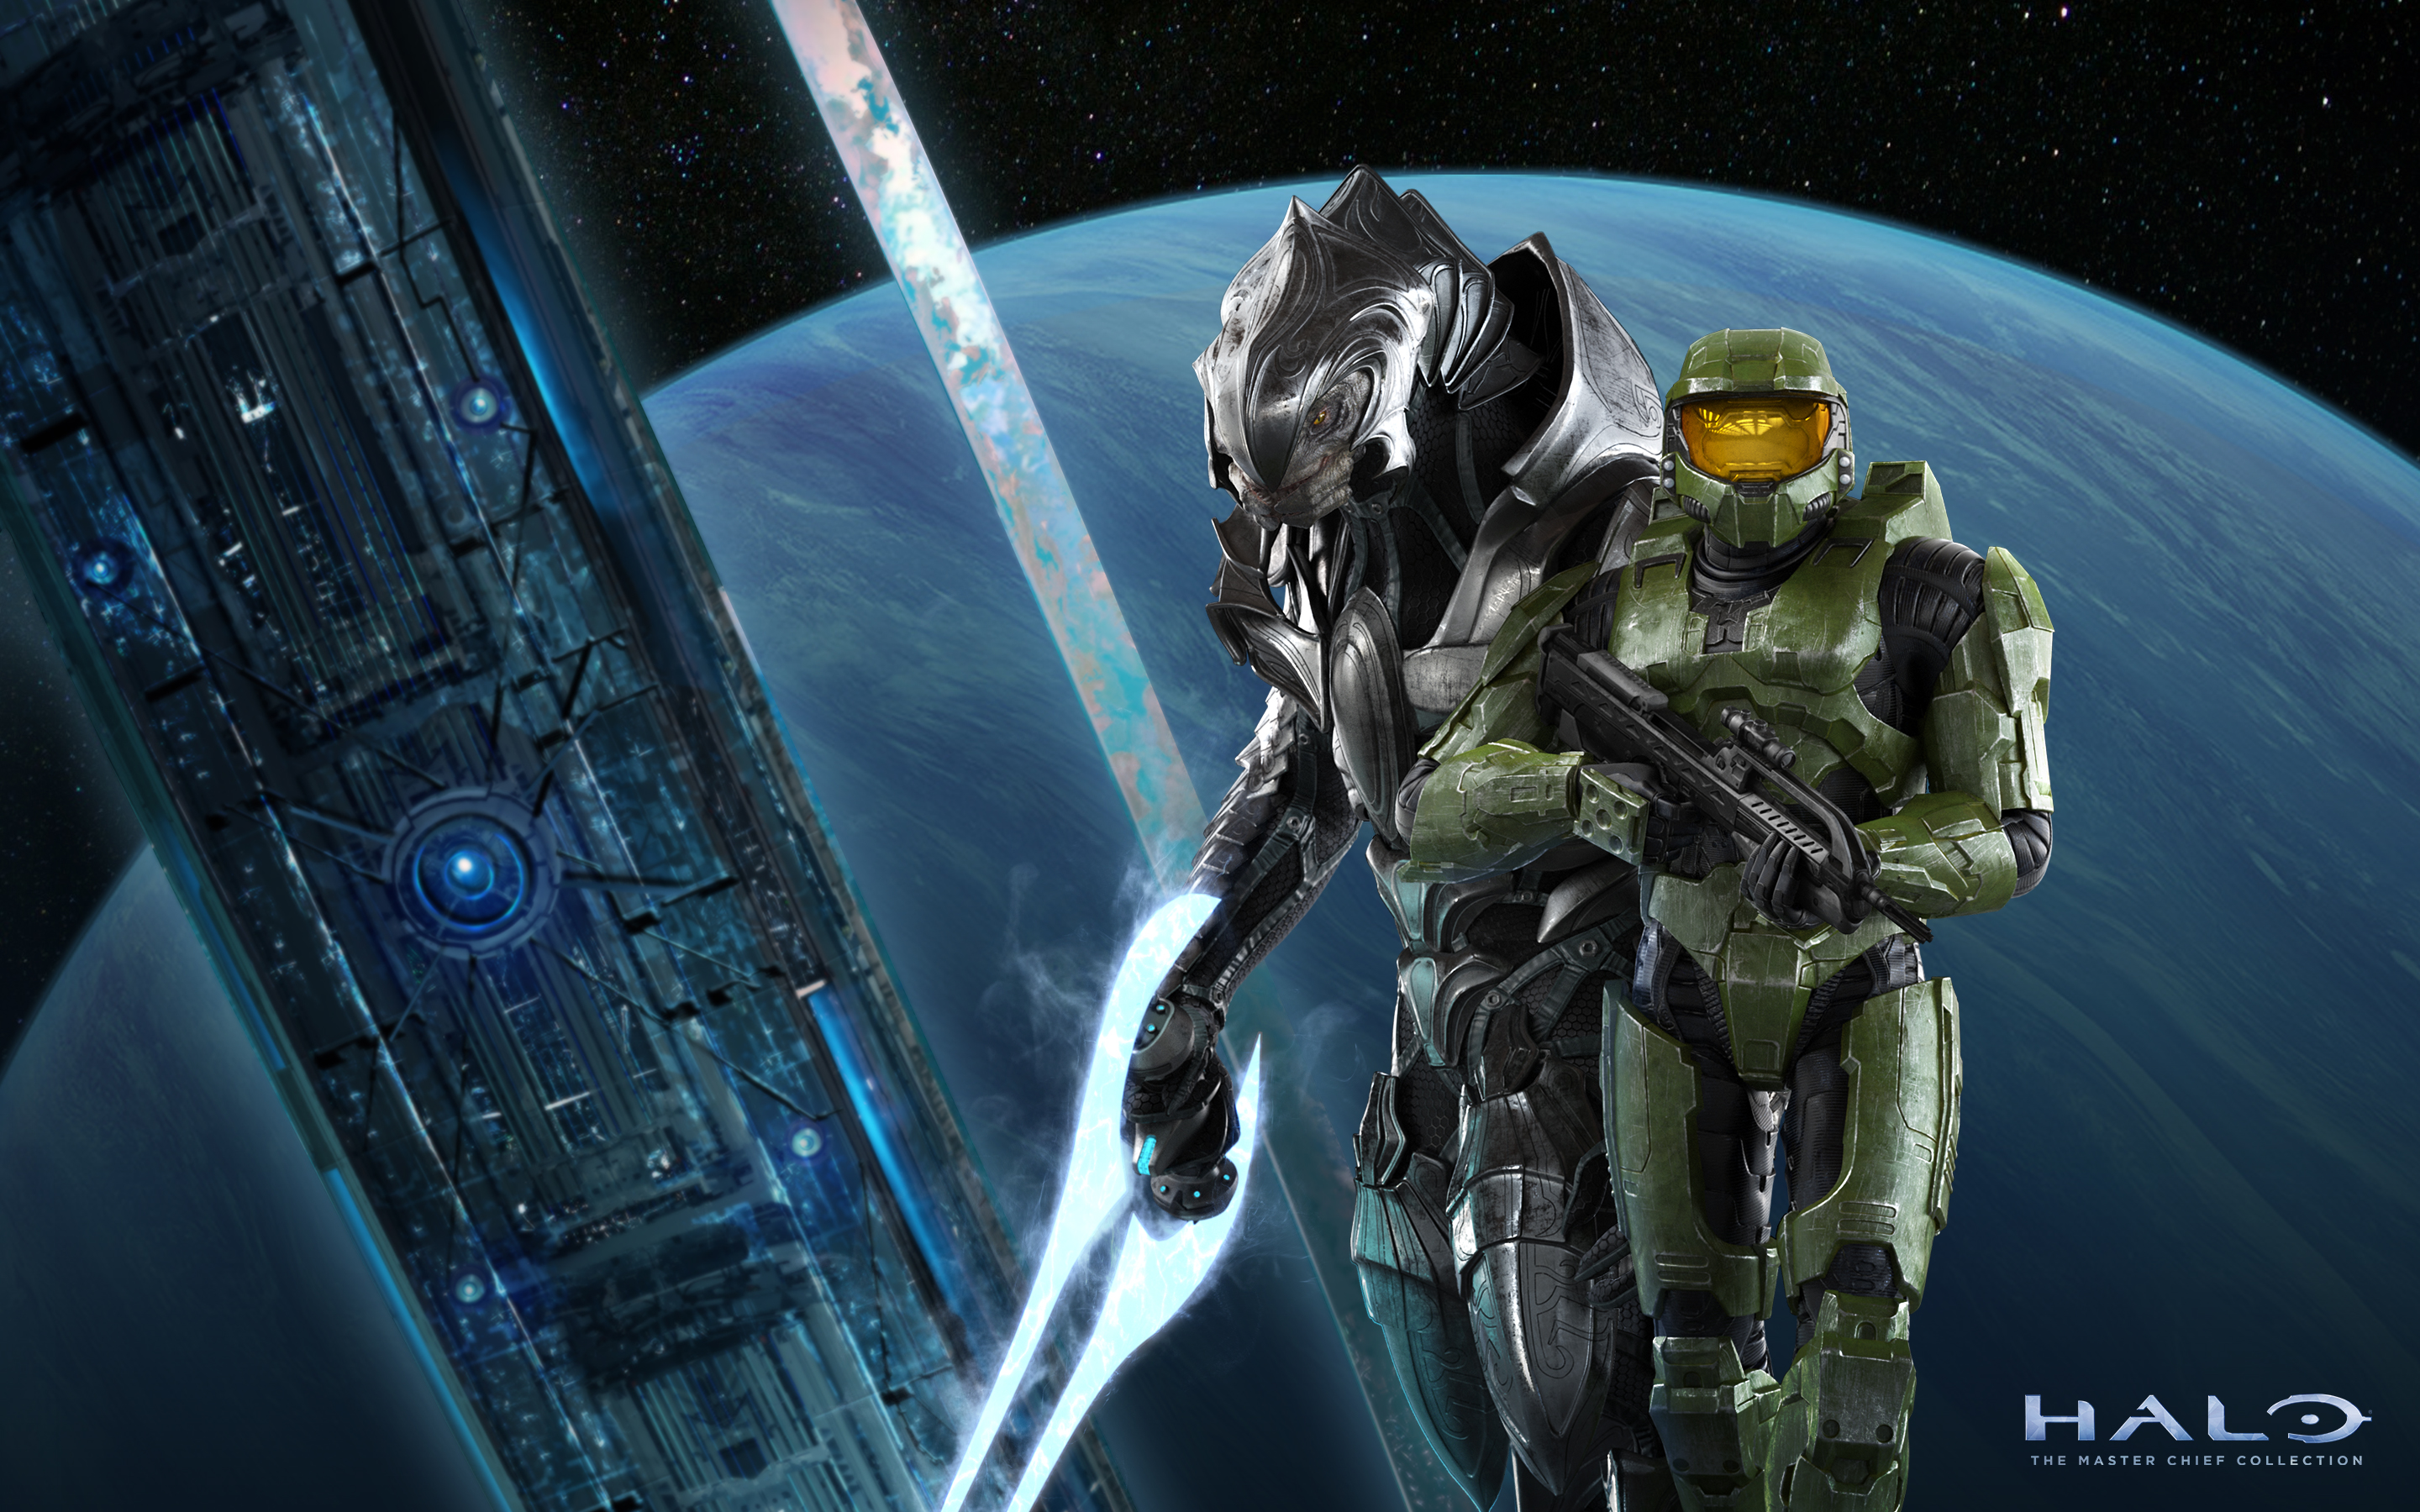 Halo 2 anniversary mobile and screen wallpapers halofanforlife 1 wallpaper voltagebd Choice Image